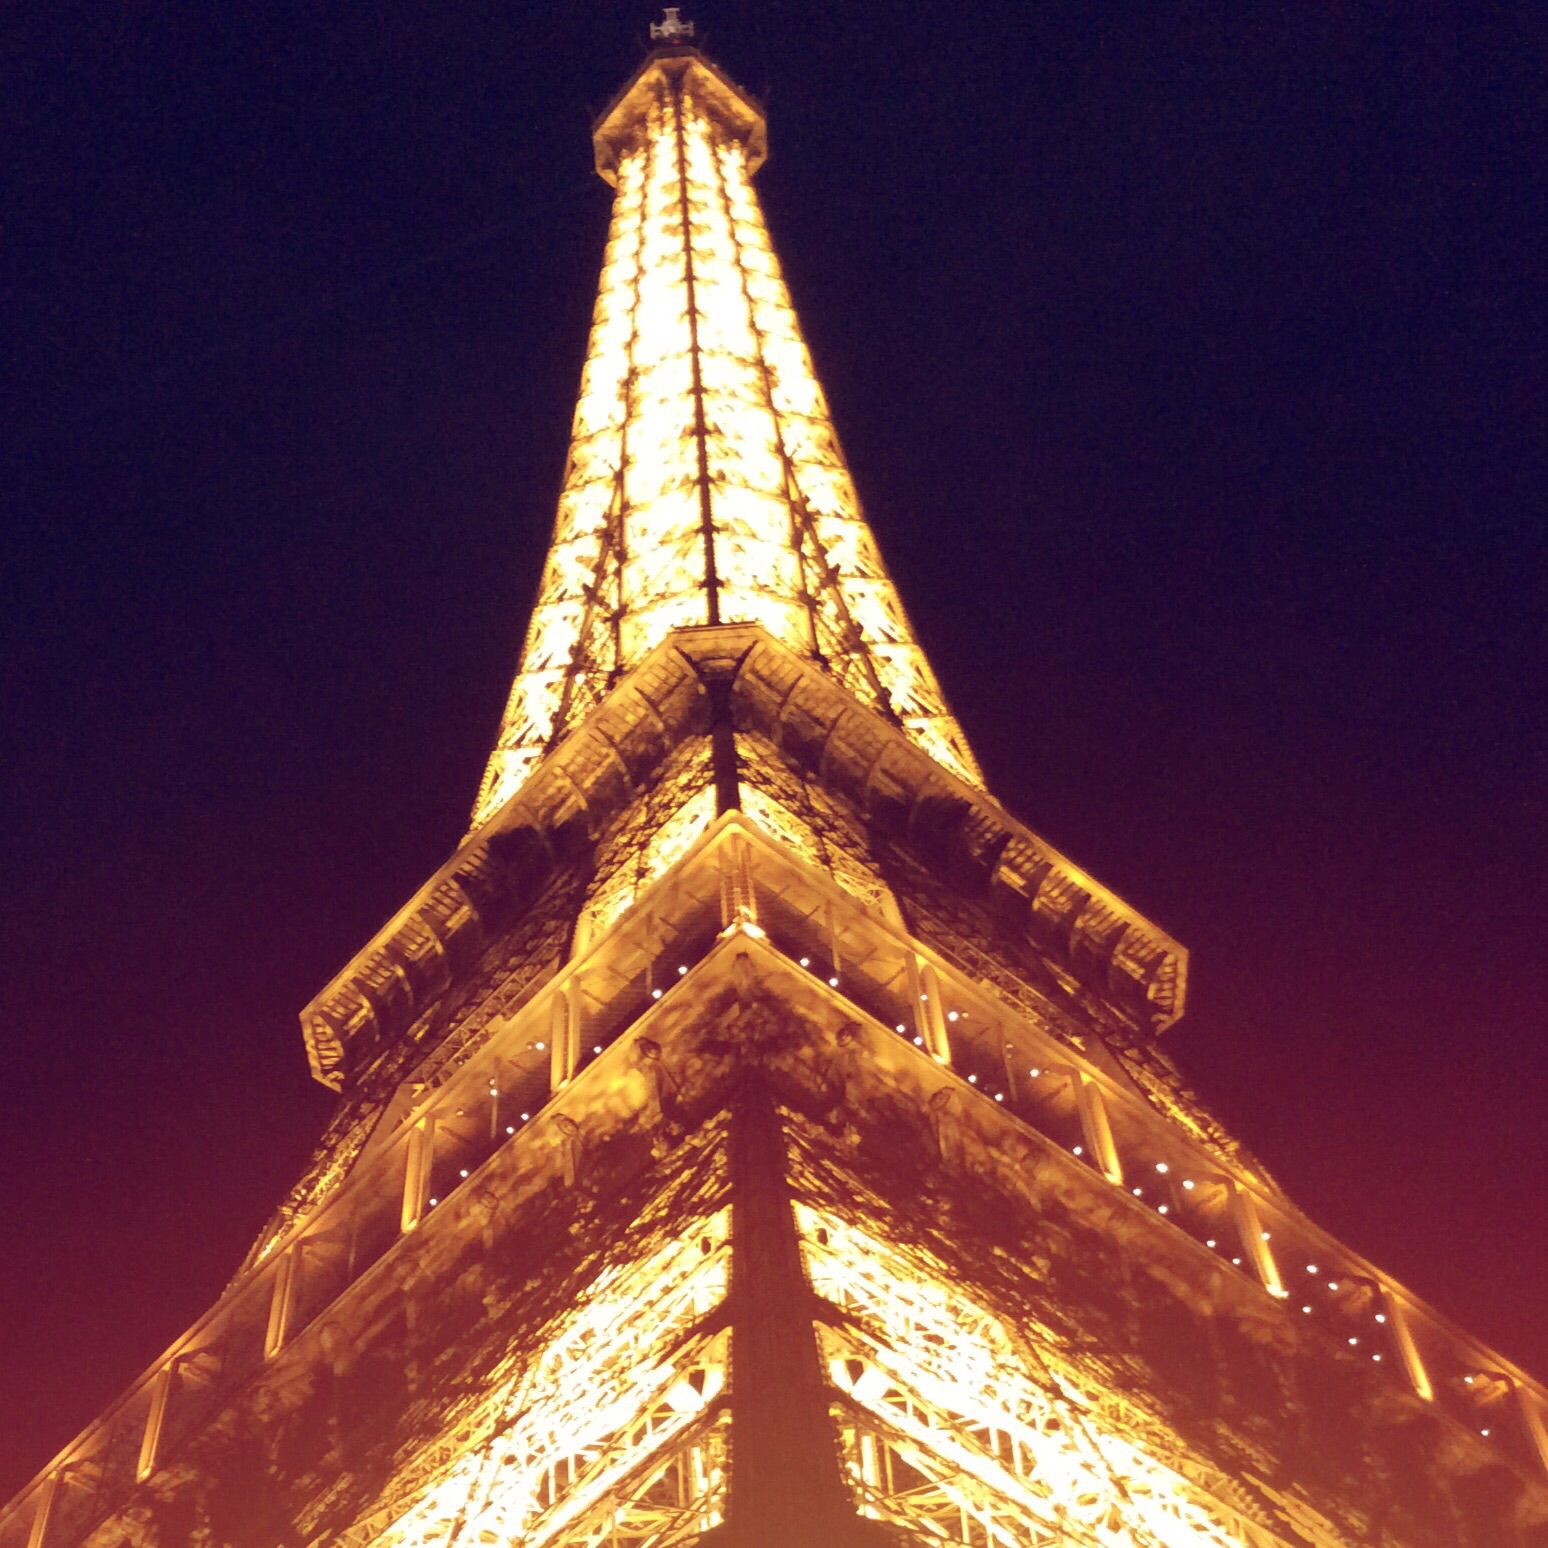 Picture of the Eiffel Tower was taken in Paris, France September 2015